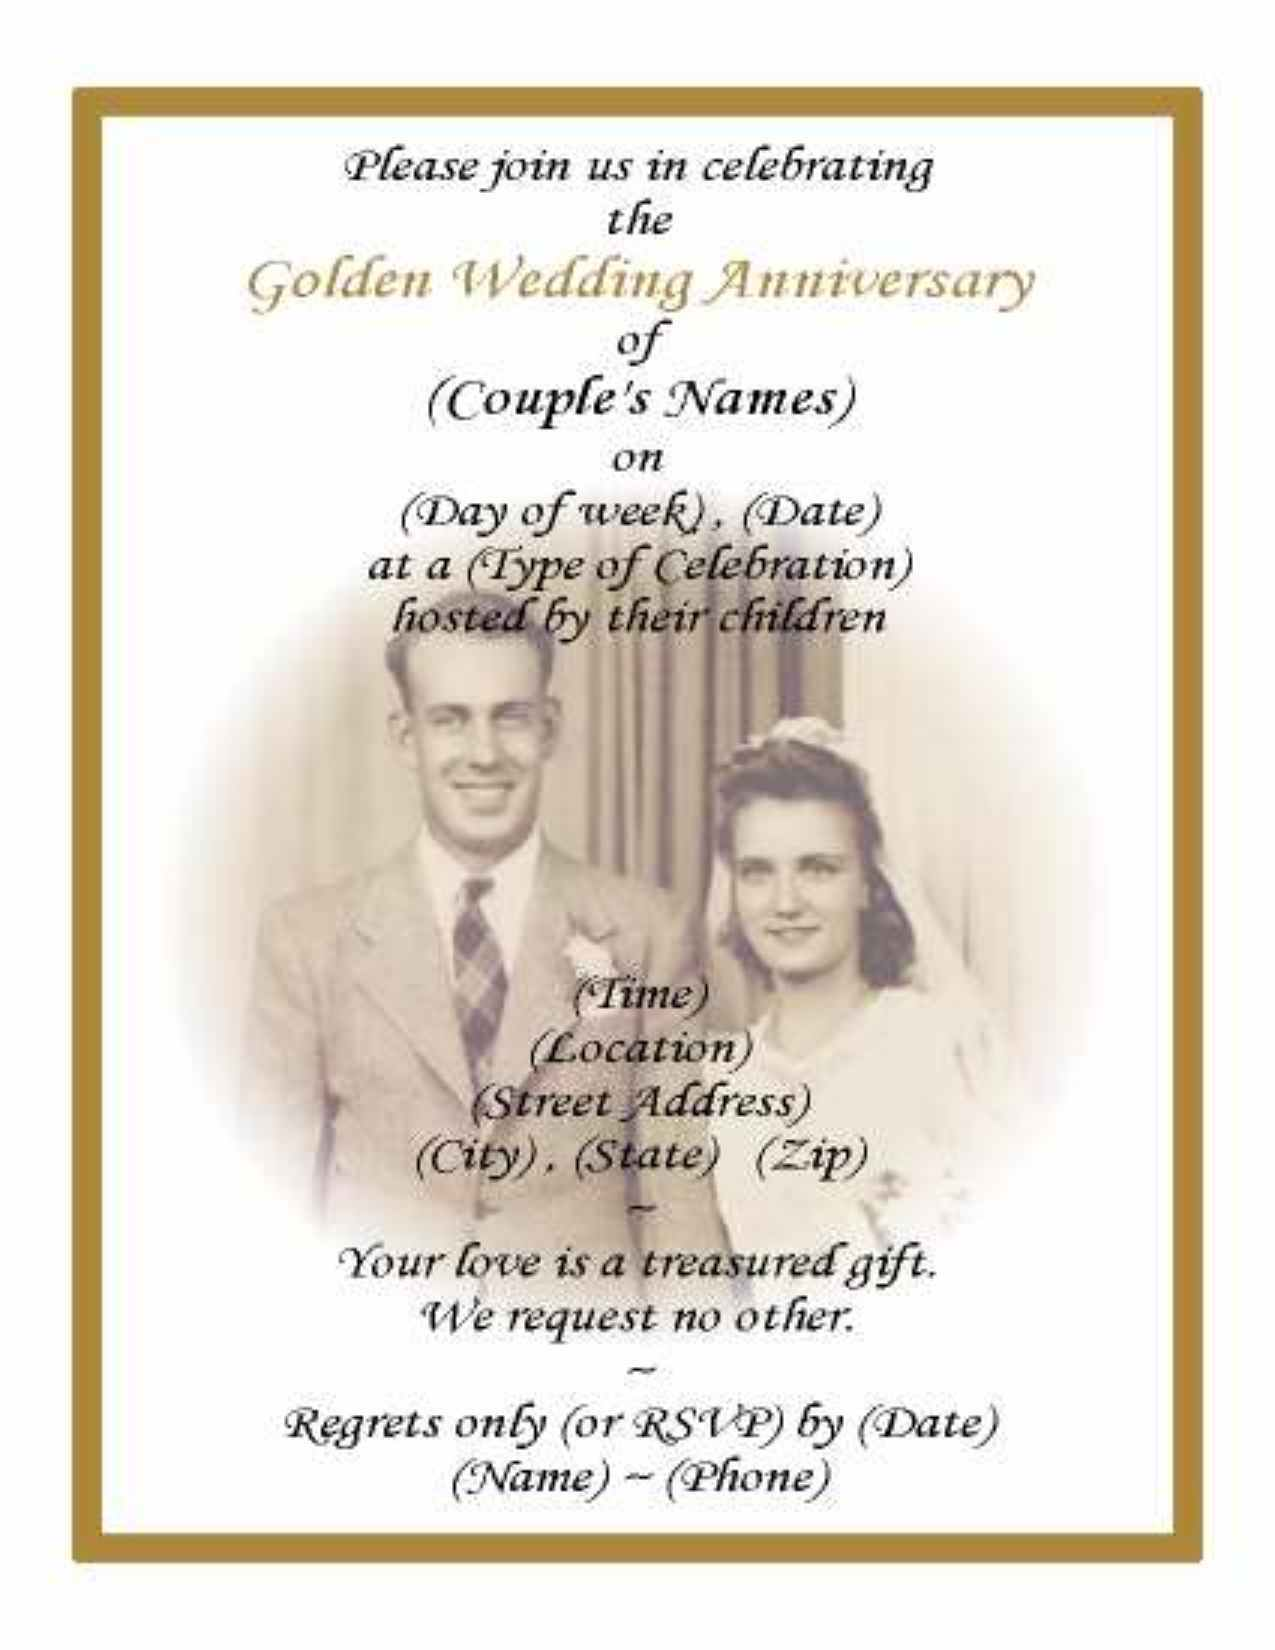 50th Wedding Anniversary Invitation Wording Samples In Hindi : 60) 50th GOLDEN WEDDING ANNIVERSARY PHOTO INVITATIONS $23.99 1 of ...